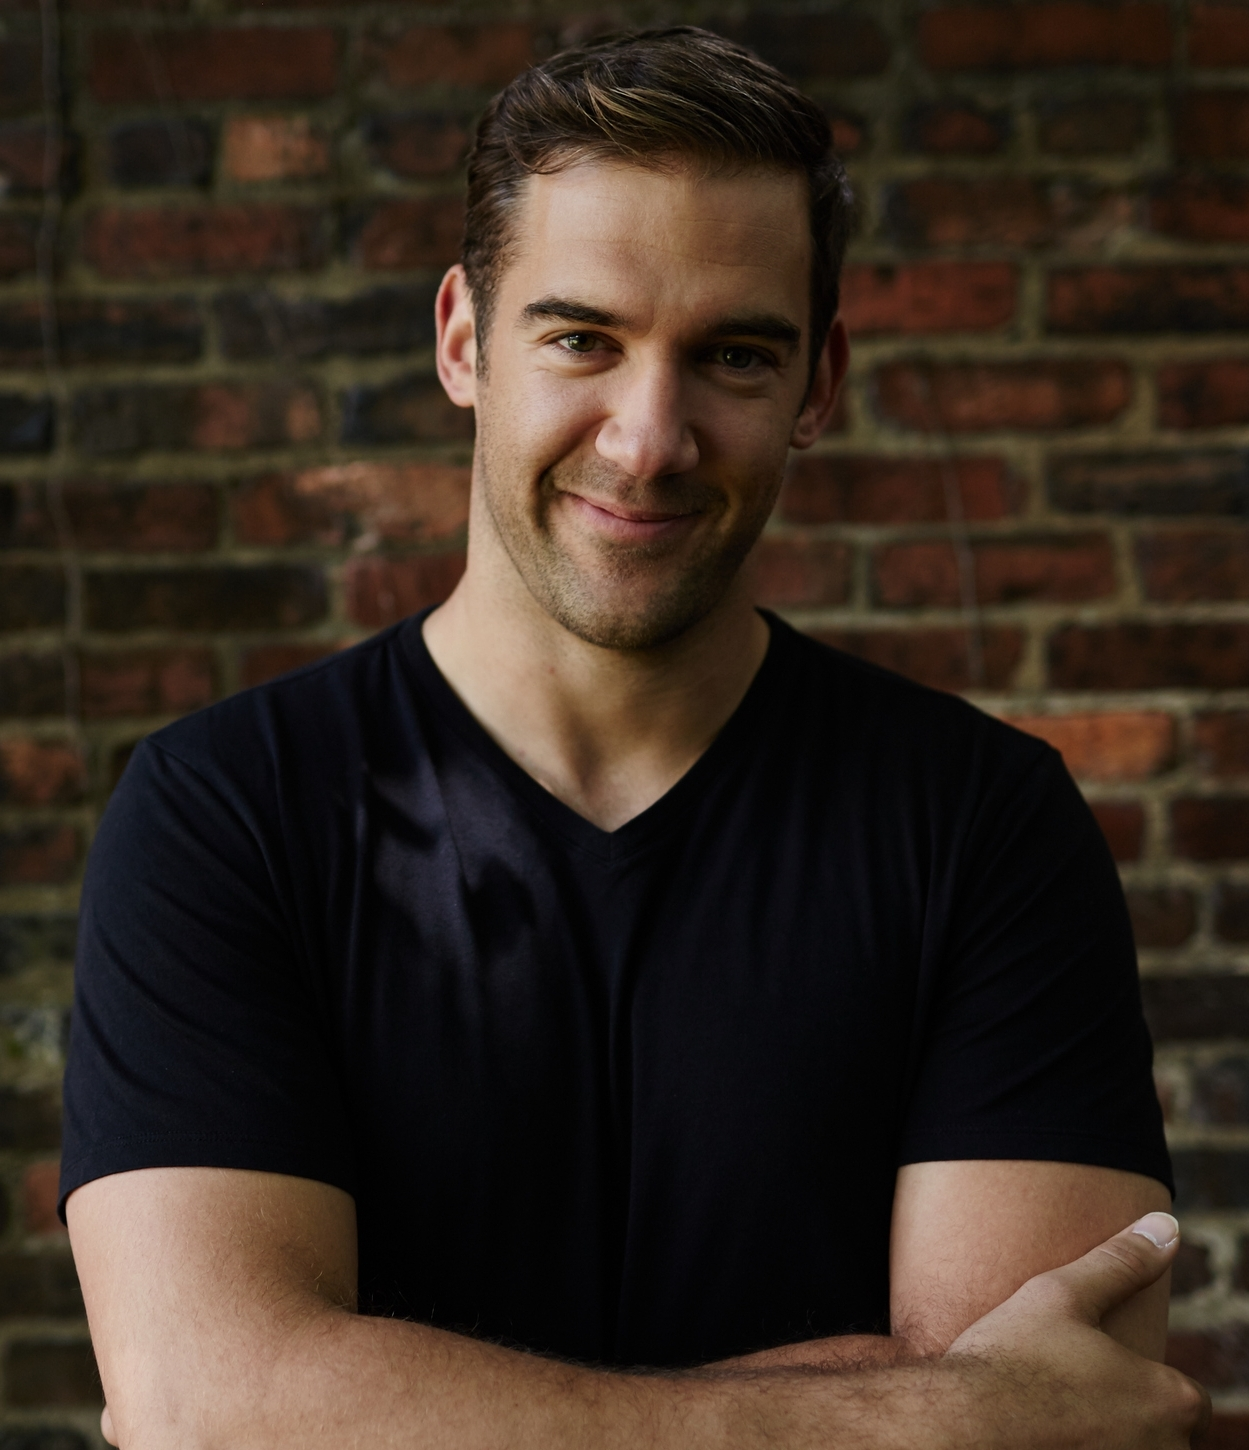 Lewis Howes, School of Greatness author and podcaster